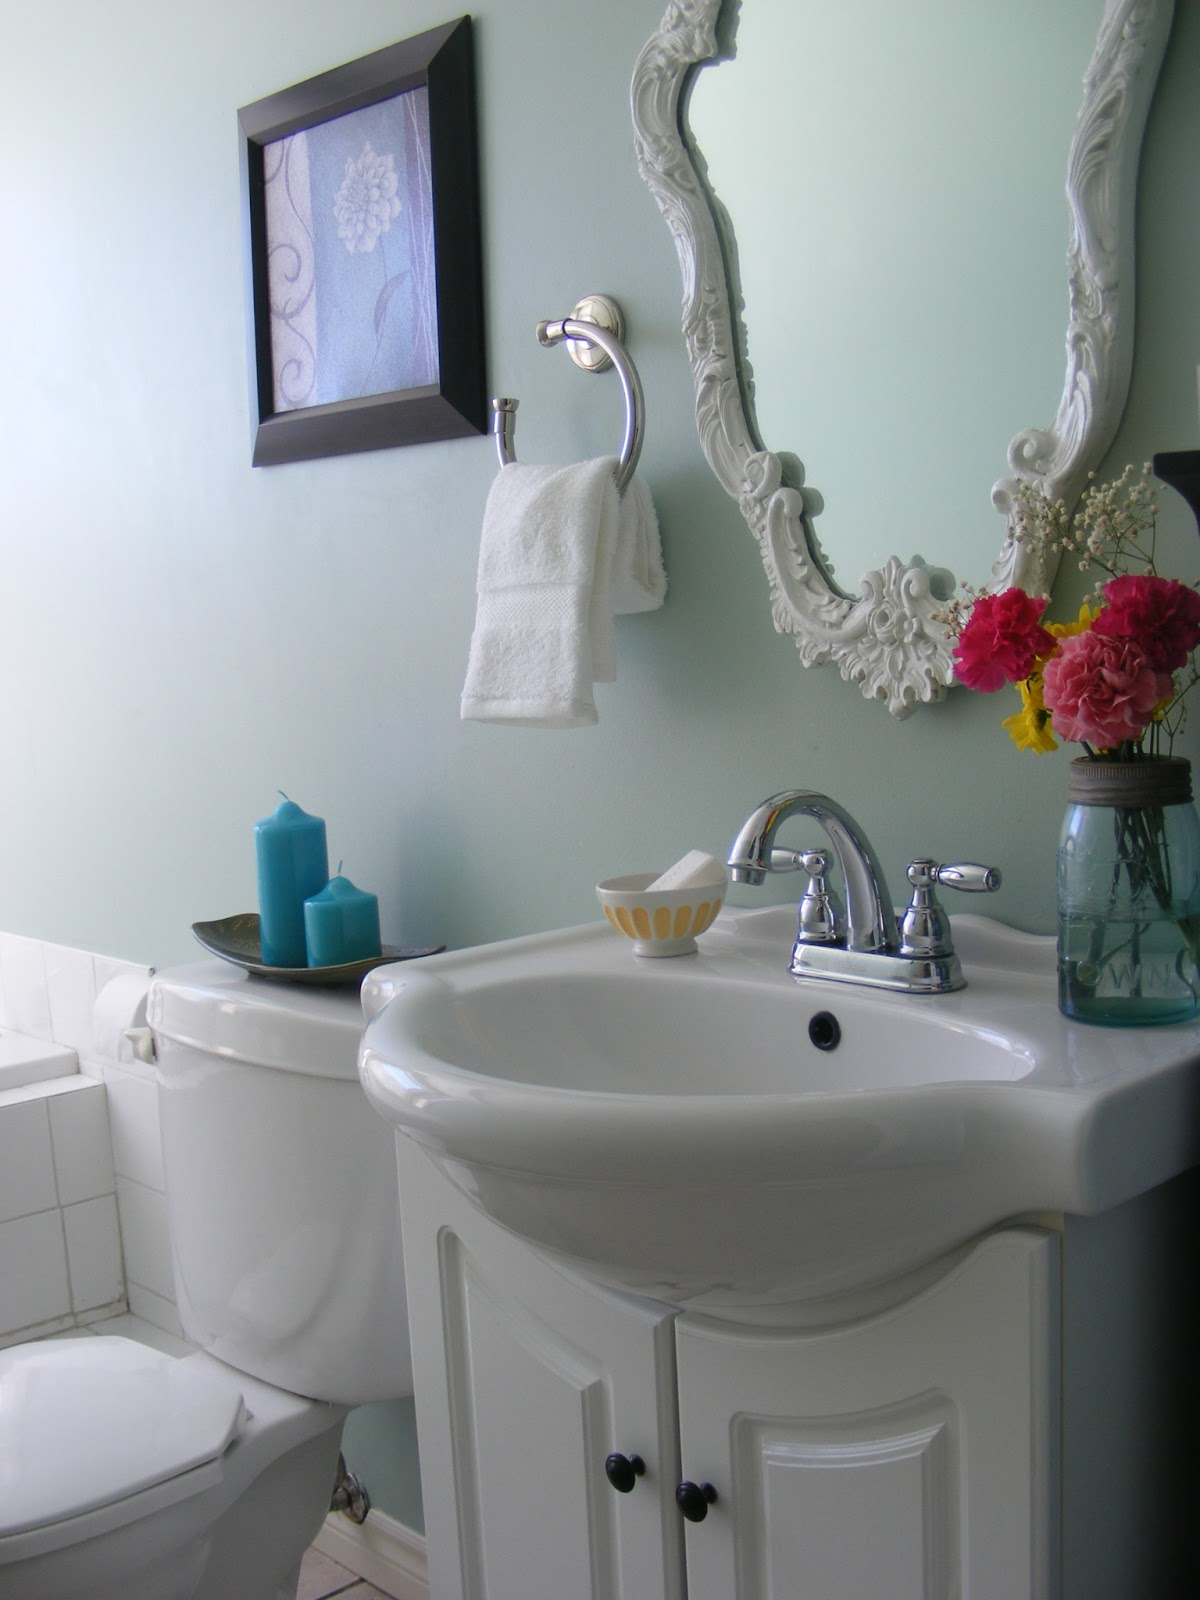 How To Have An Always Clean Bathroom In Minutes A Day The - Bathroom in a day